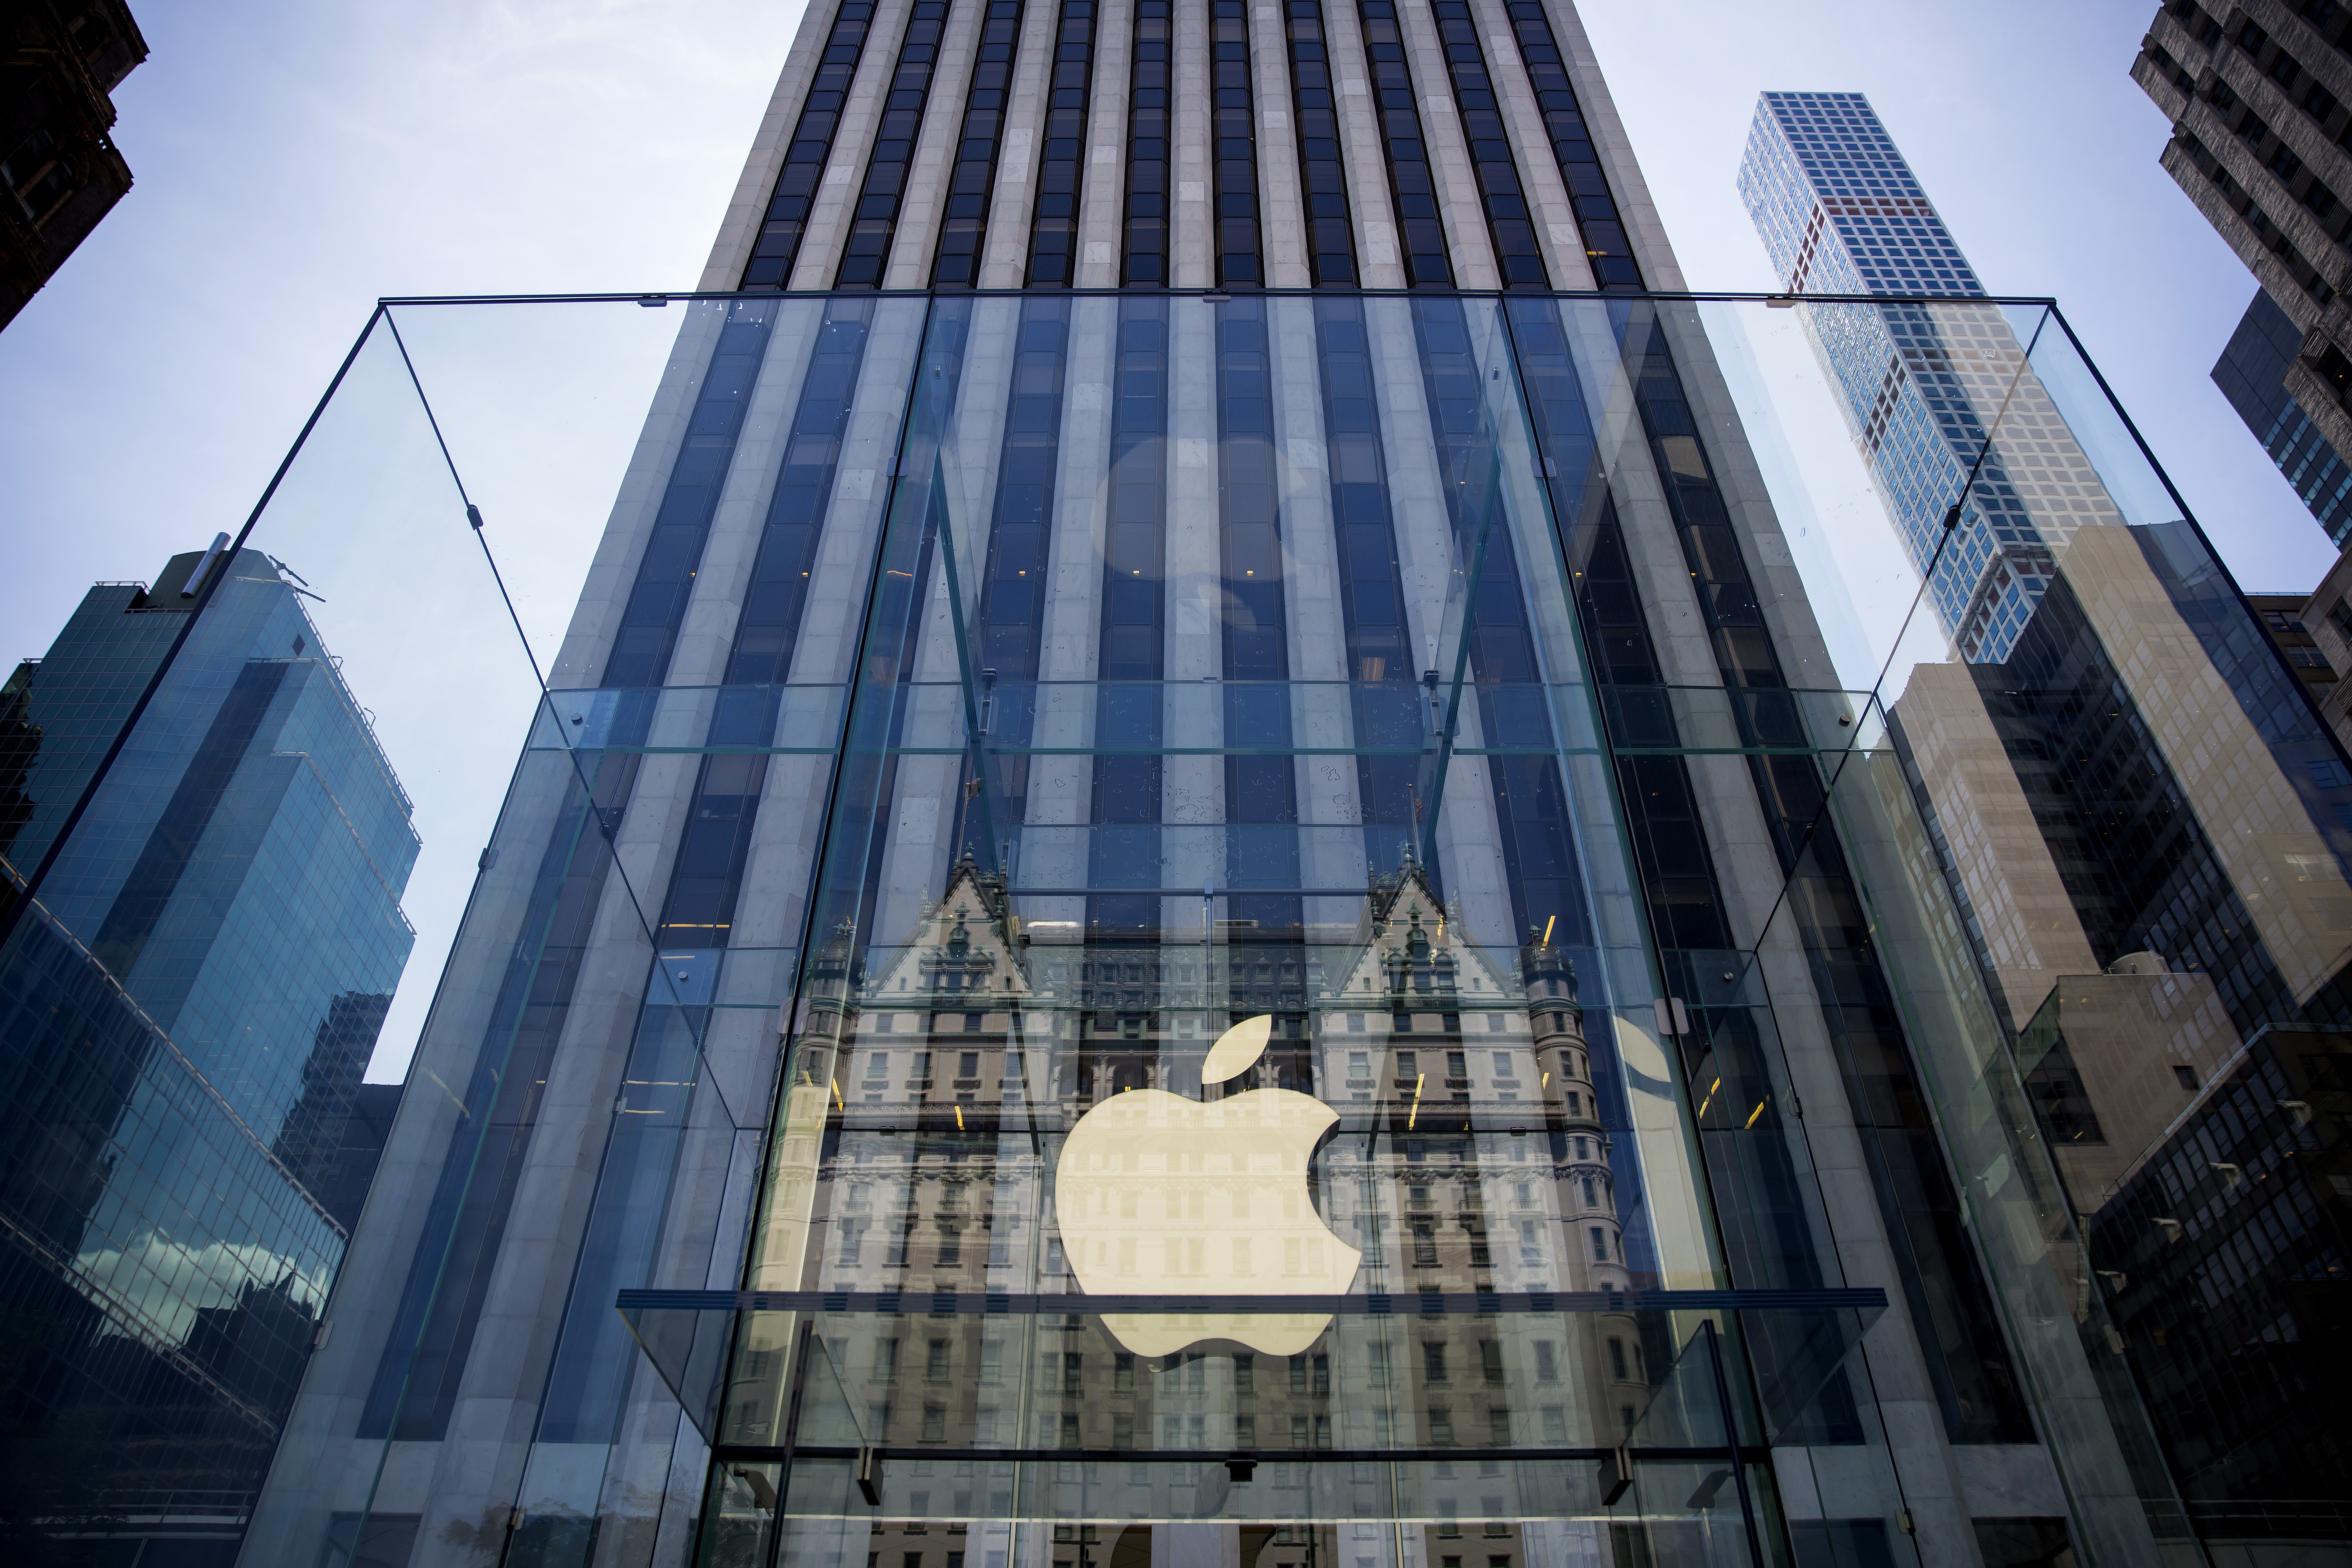 The Apple Store on Fifth Avenue in New York City on June 17, 2015.